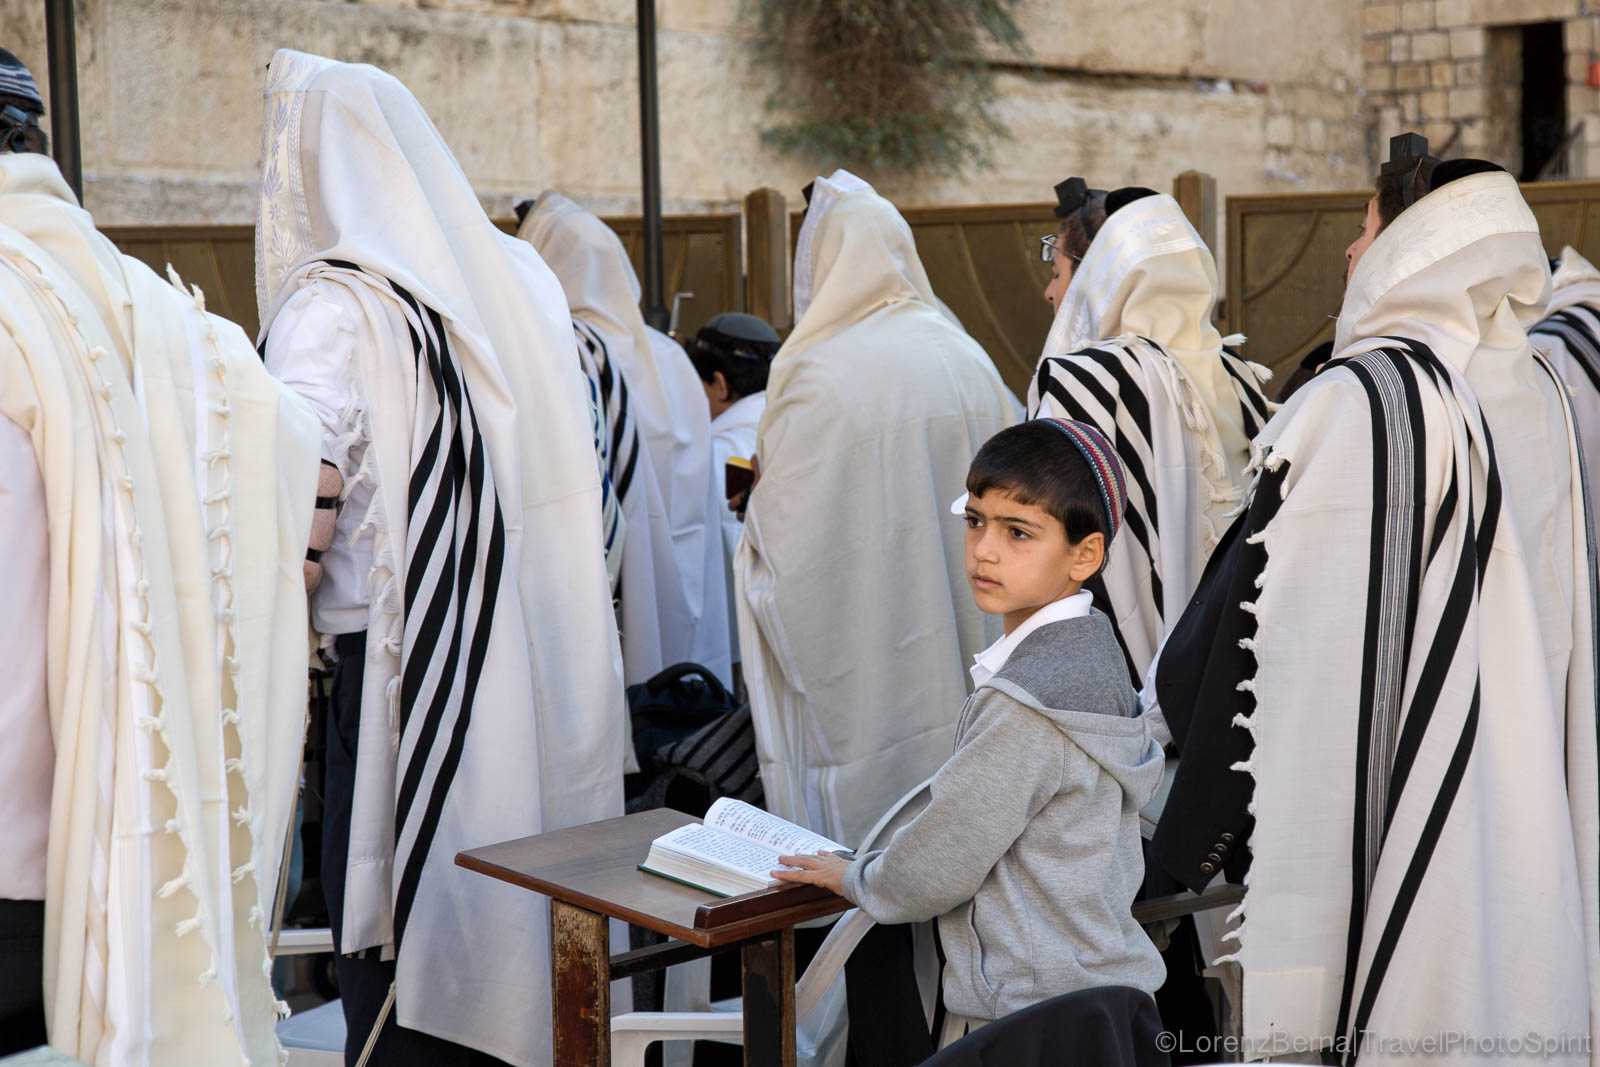 Young boy reciting the Torah among Jewish men, in the Jerusalem Old City.